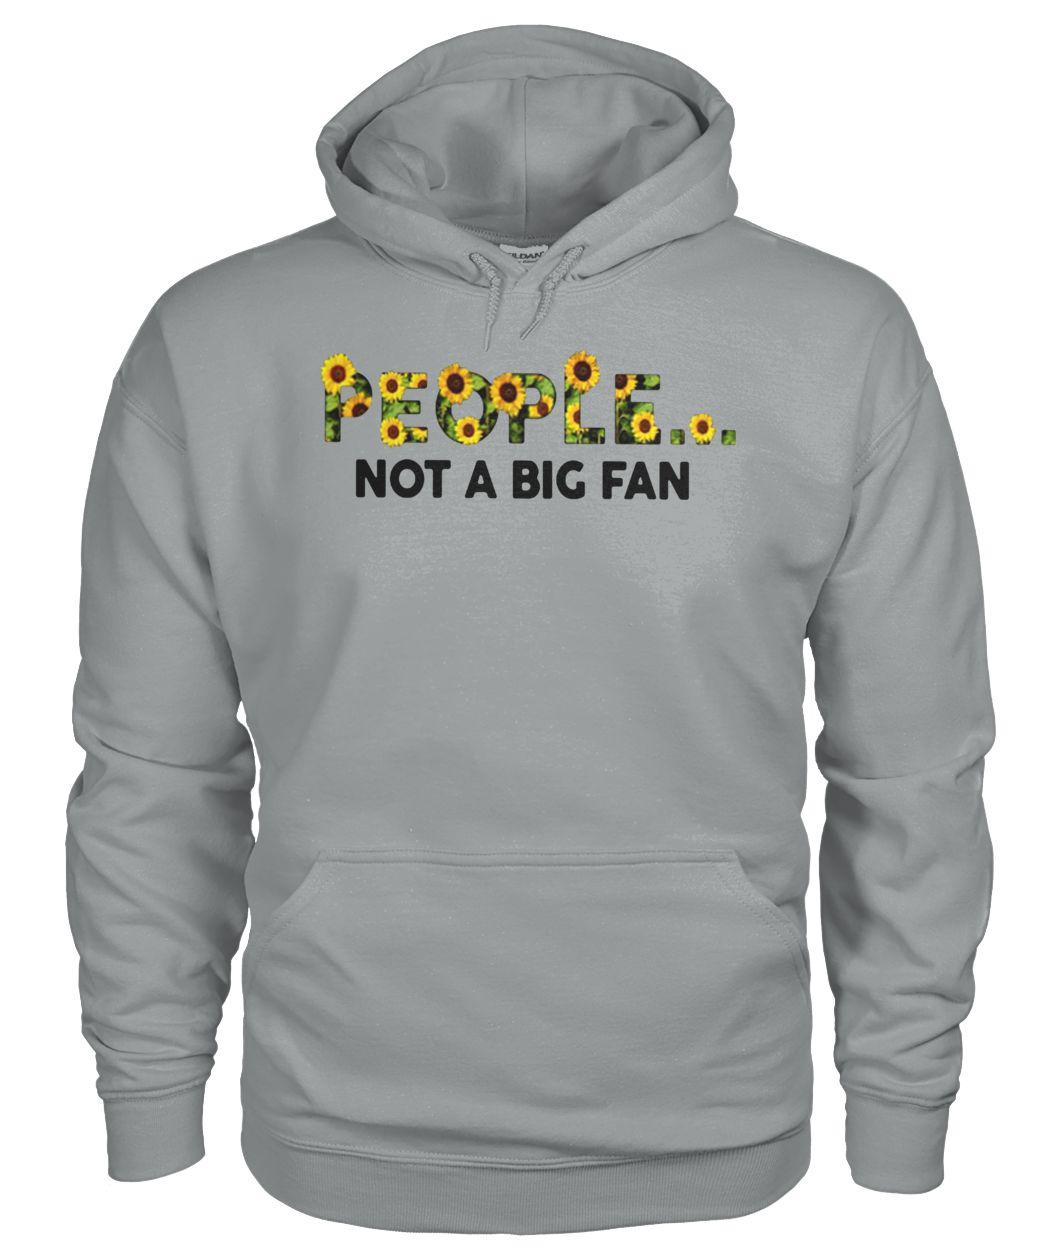 Sunflower people not a big fan gildan hoodie